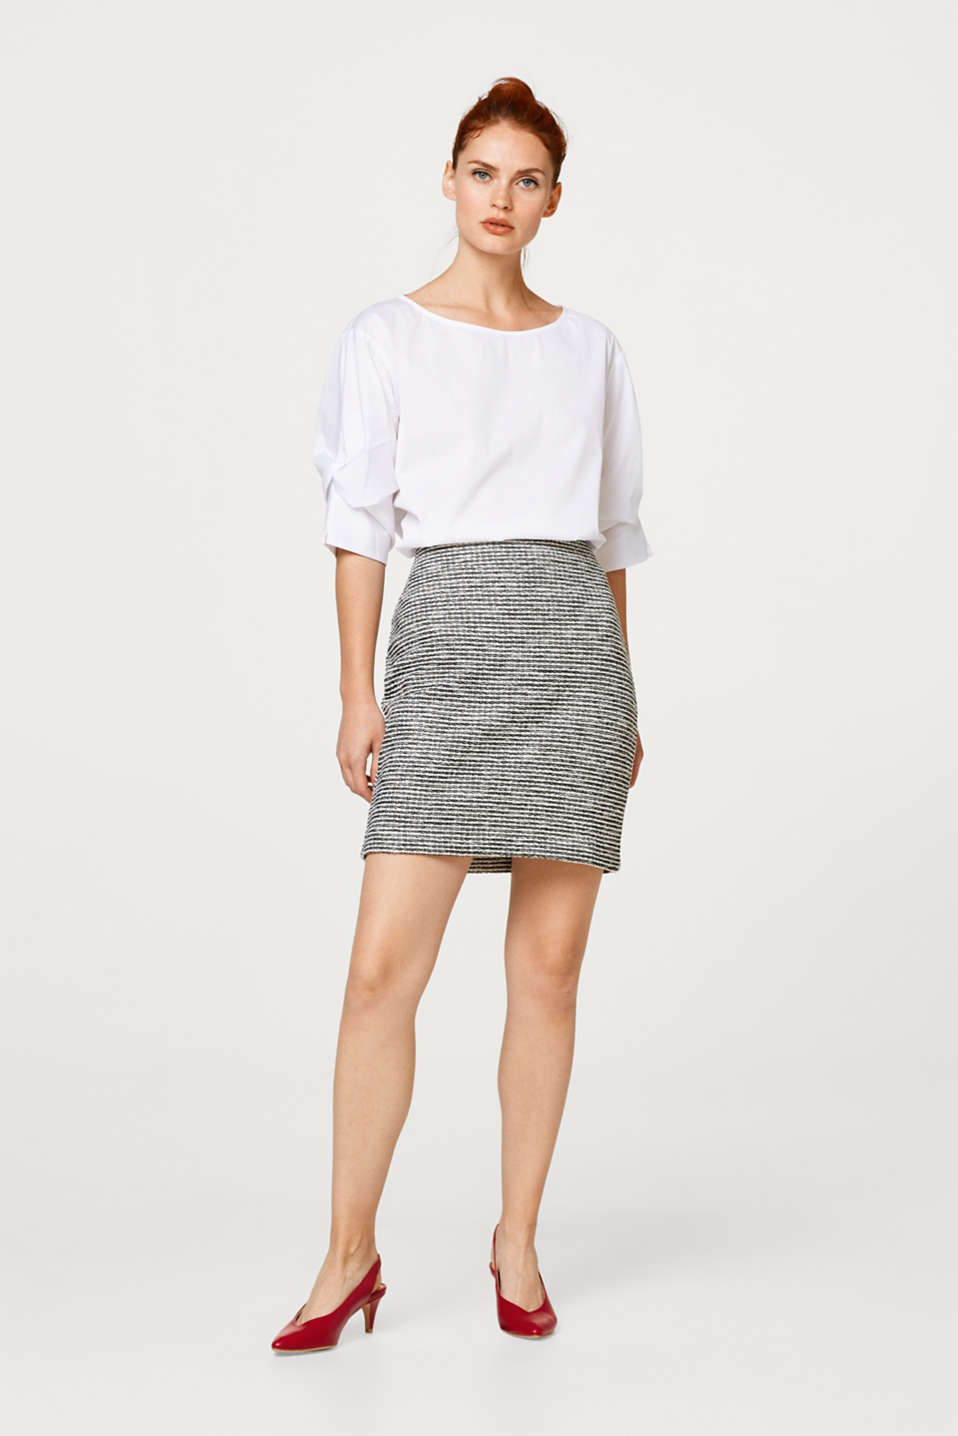 Pencil skirt in textured jersey